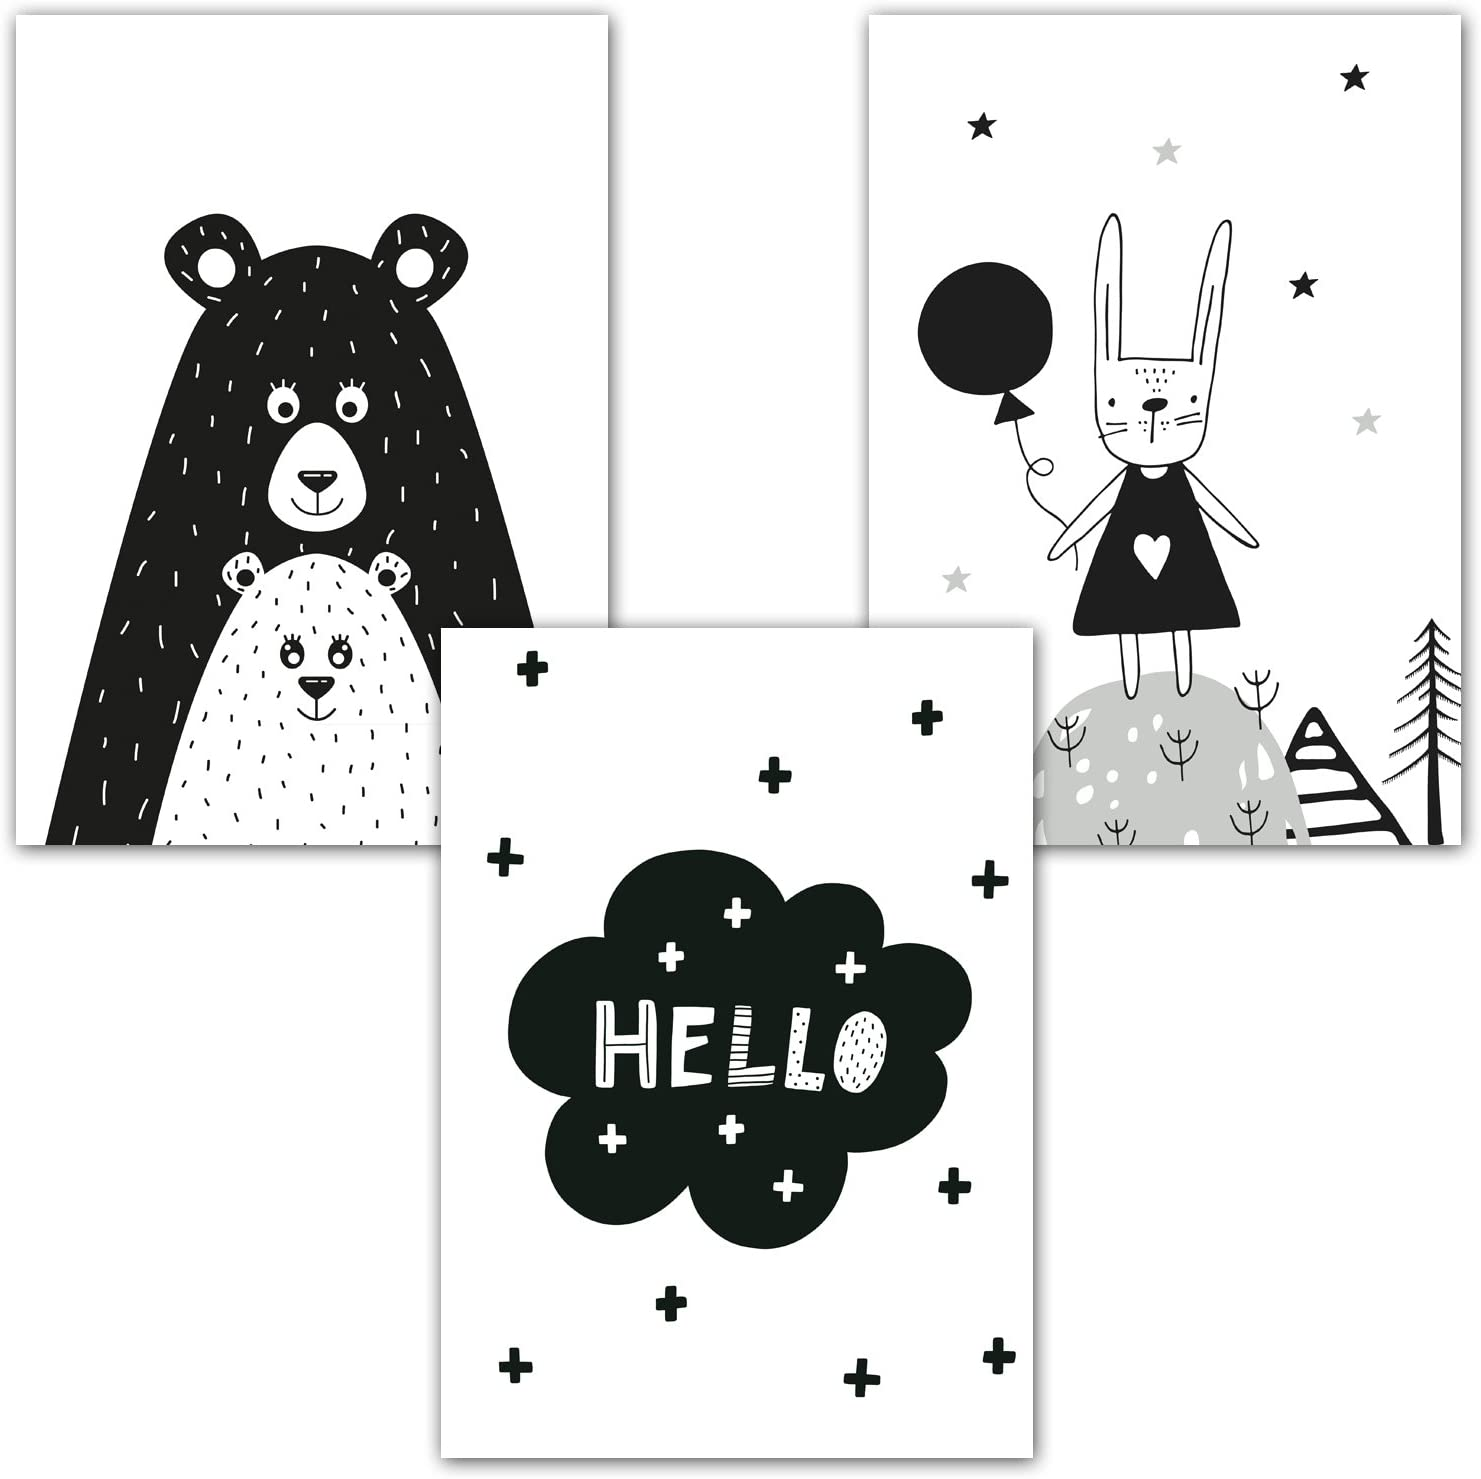 Scandinavian Style Children/'s Poster Art Print Frechdax Set of 3 A4 Posters for Babies/' or Children/'s Bedrooms without Frame Black//White or Coloured Set-12 Girl Boy